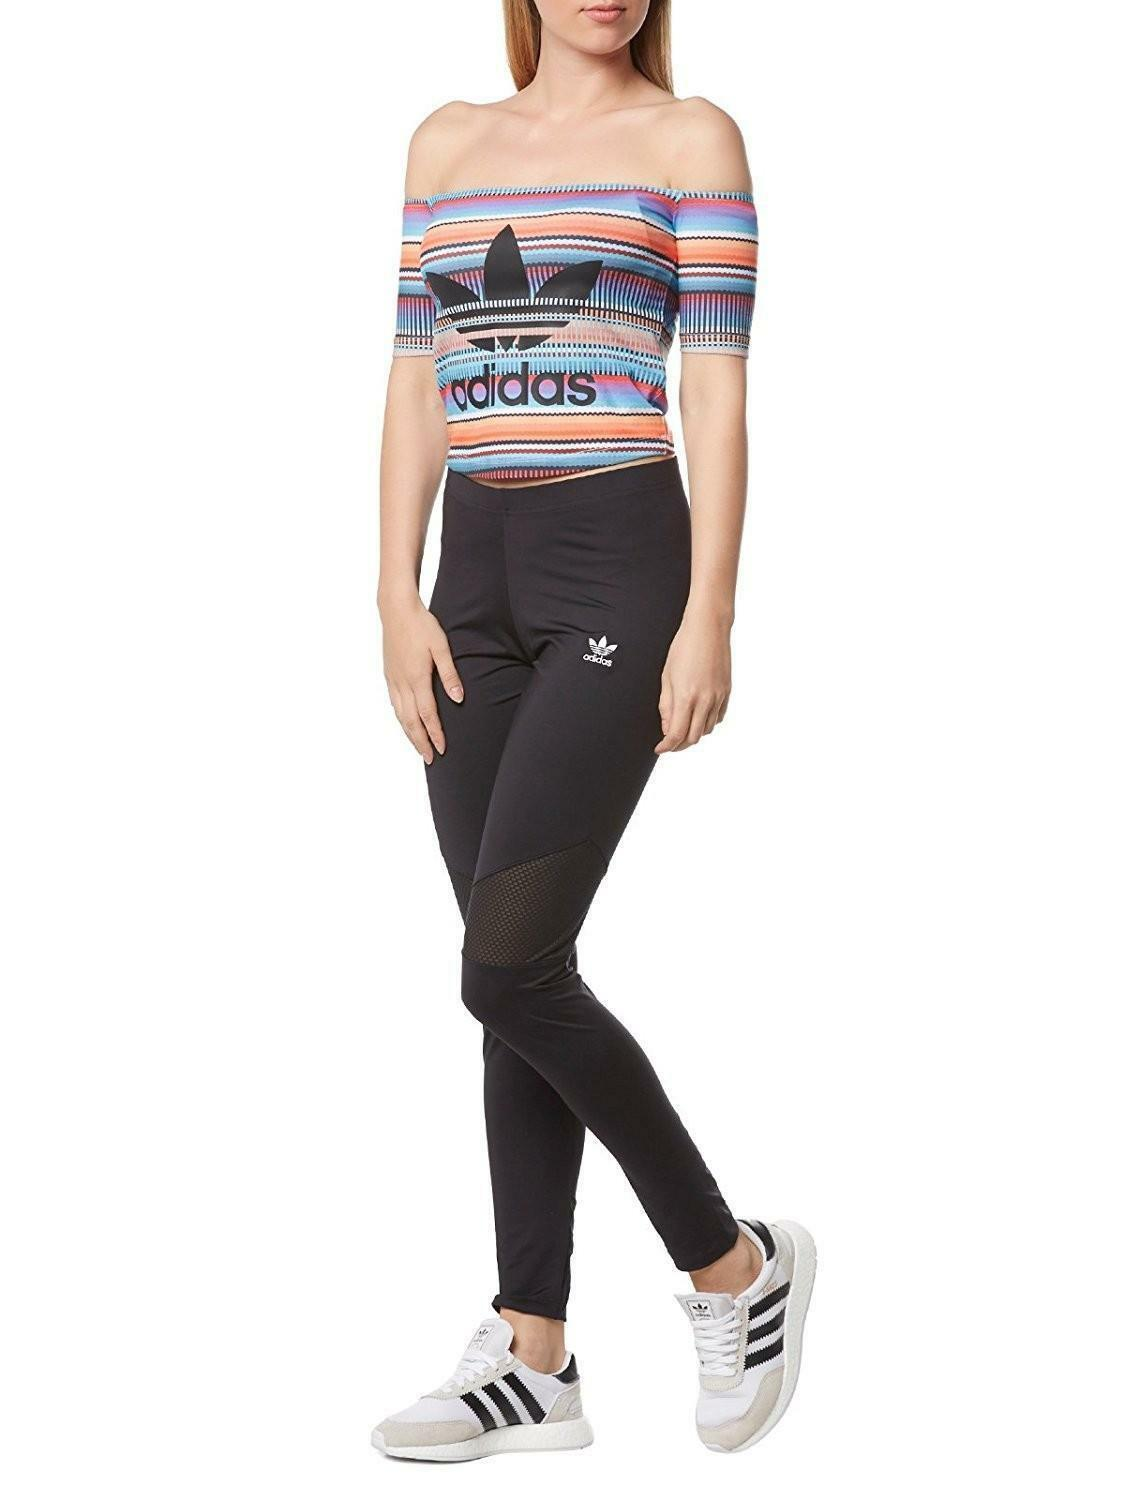 adidas adidas t-shirt off should top donna multicolore cw1392